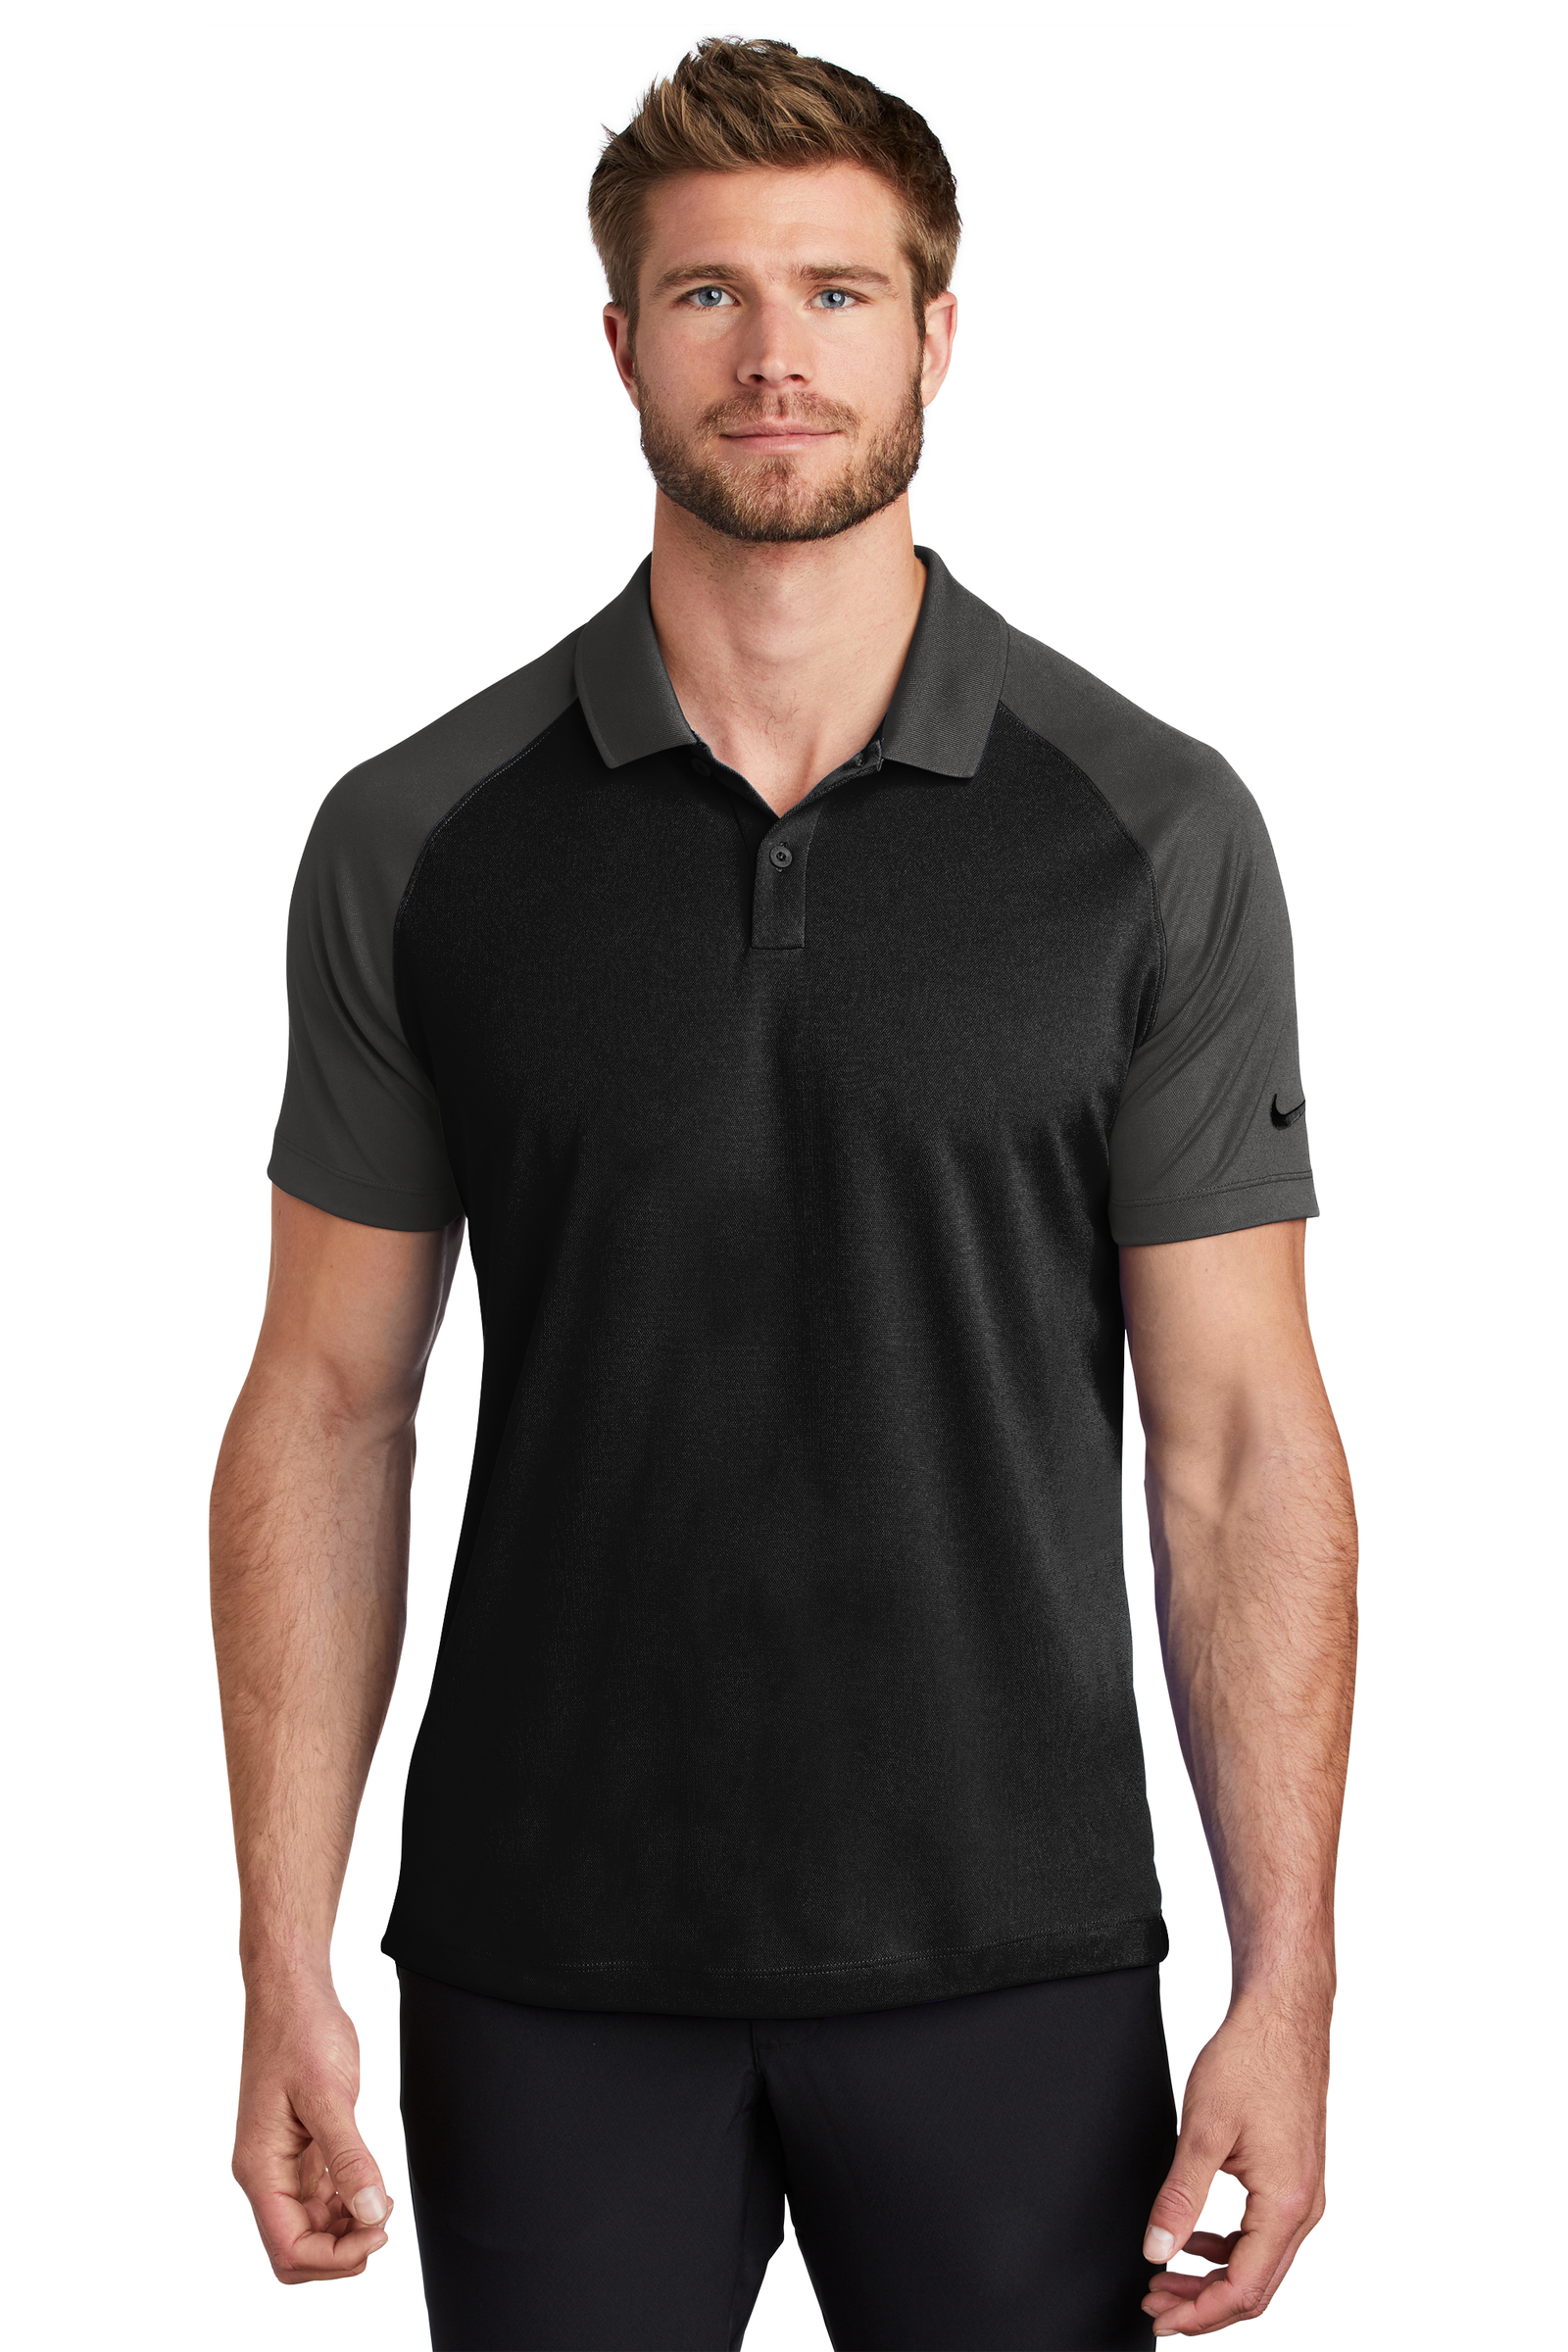 Nike Embroidered Men's Dry Raglan Polo